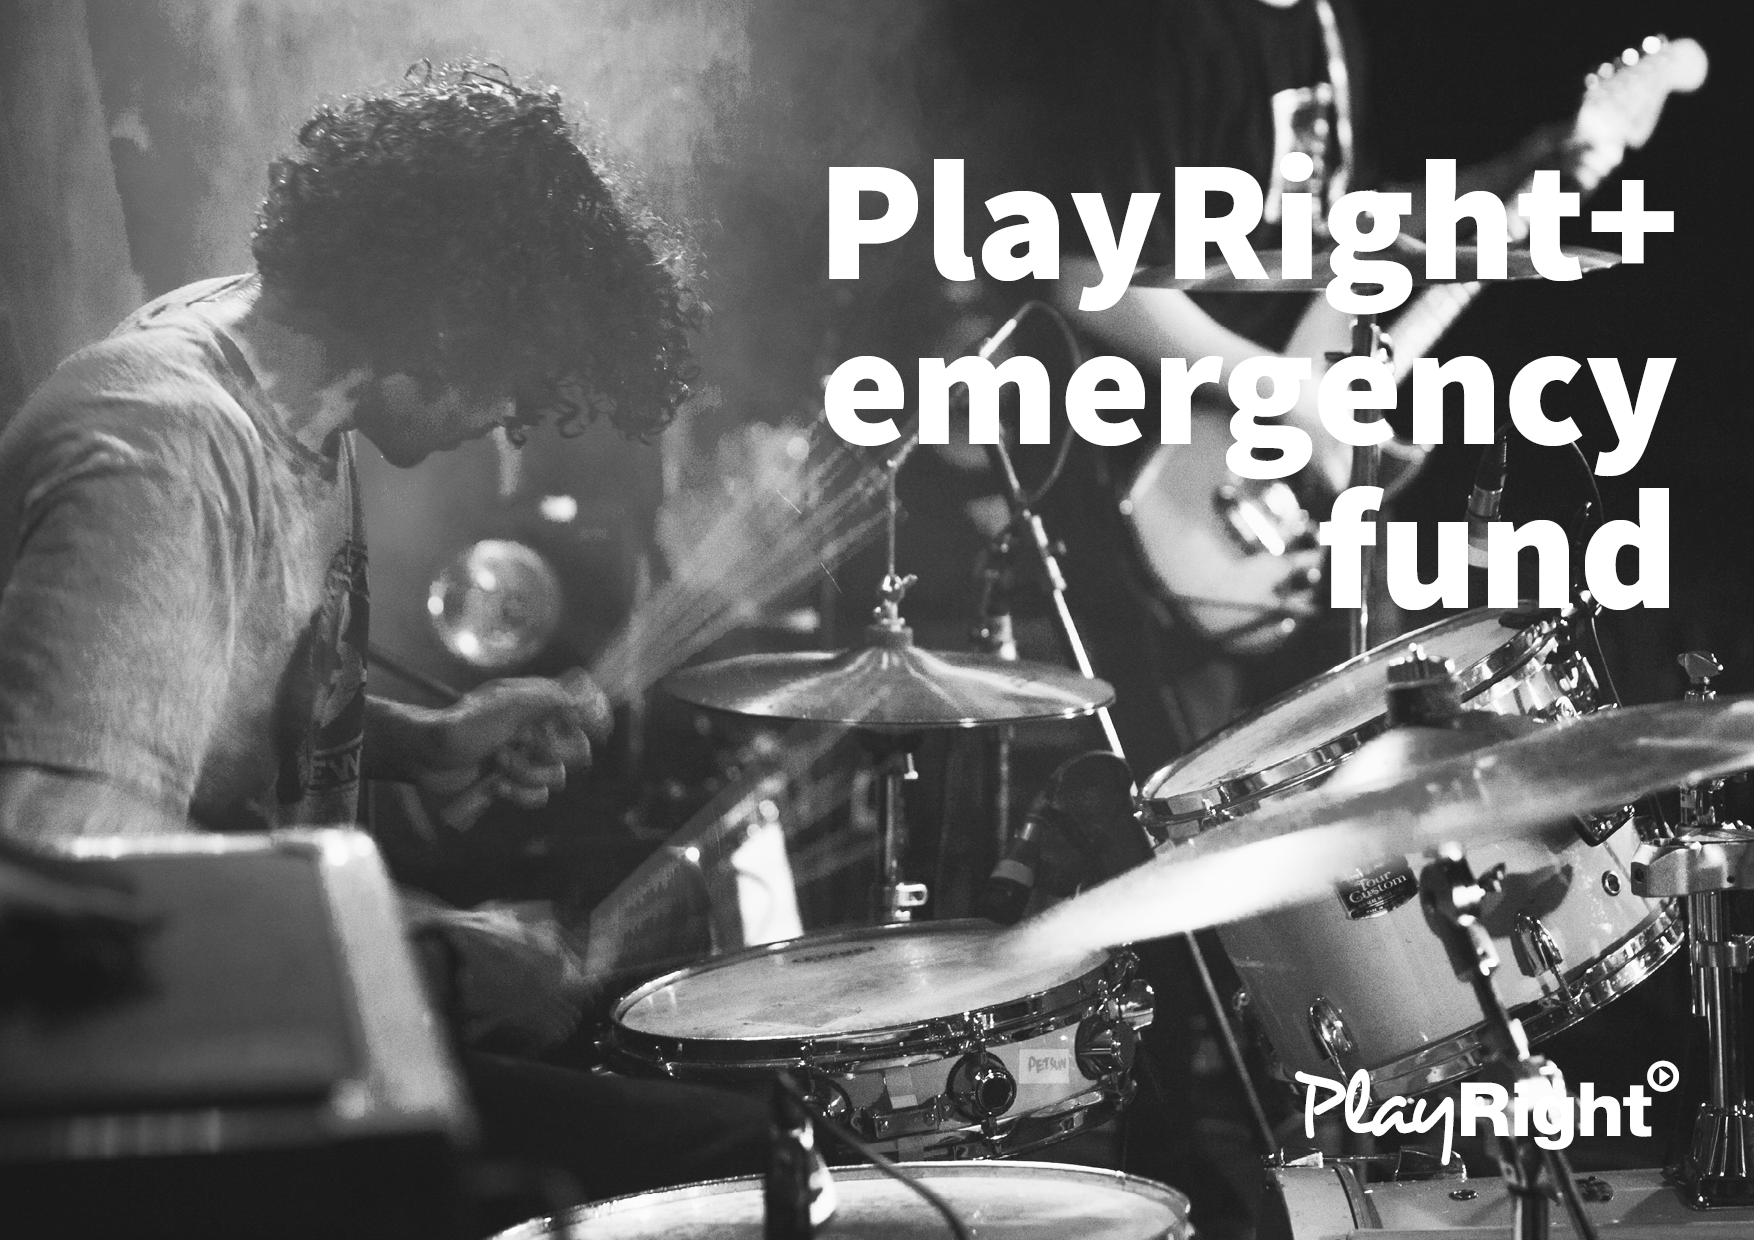 EXTENSION OF THE PLAYRIGHT+ EMERGENCY FUND UNTIL DEPLETION OF RESOURCES